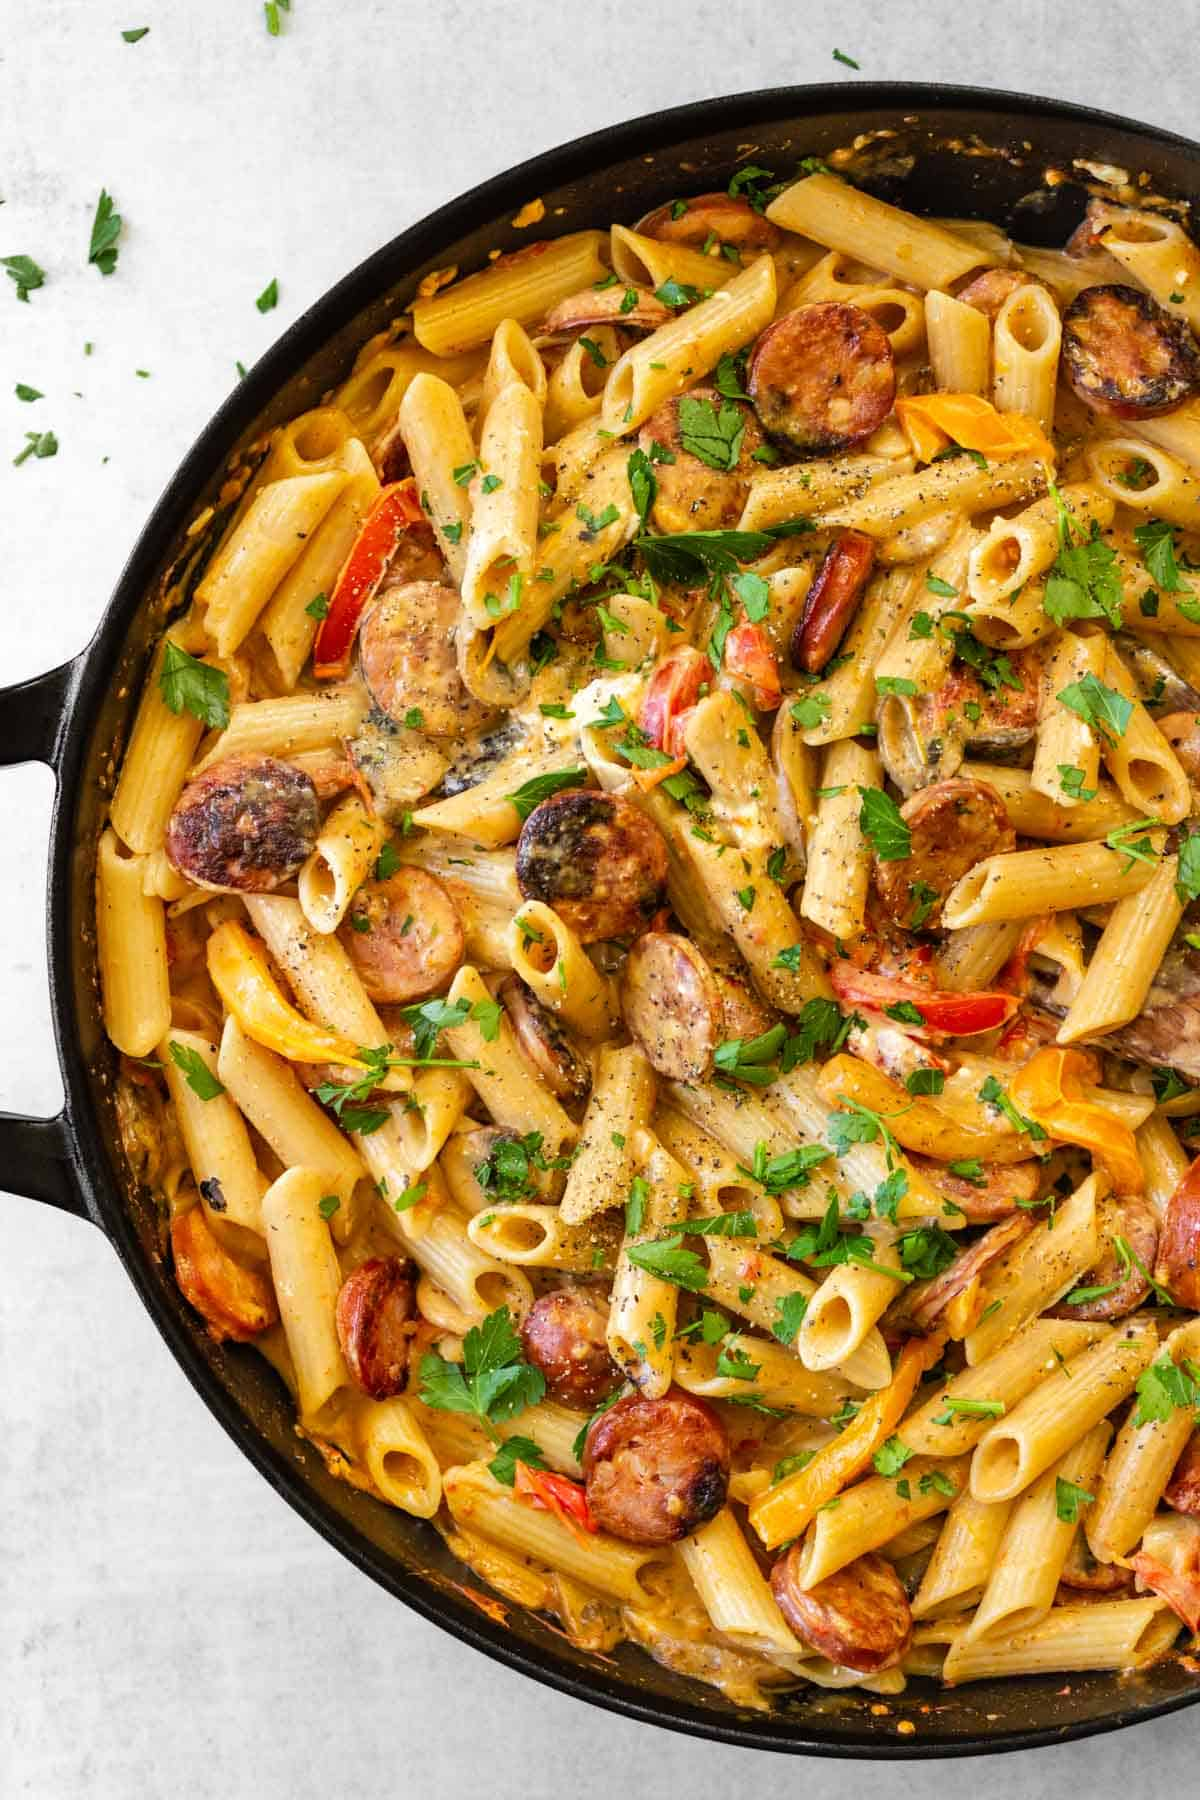 A large skillet of creamy cajun pasta with sausage, bell peppers, and mushrooms.